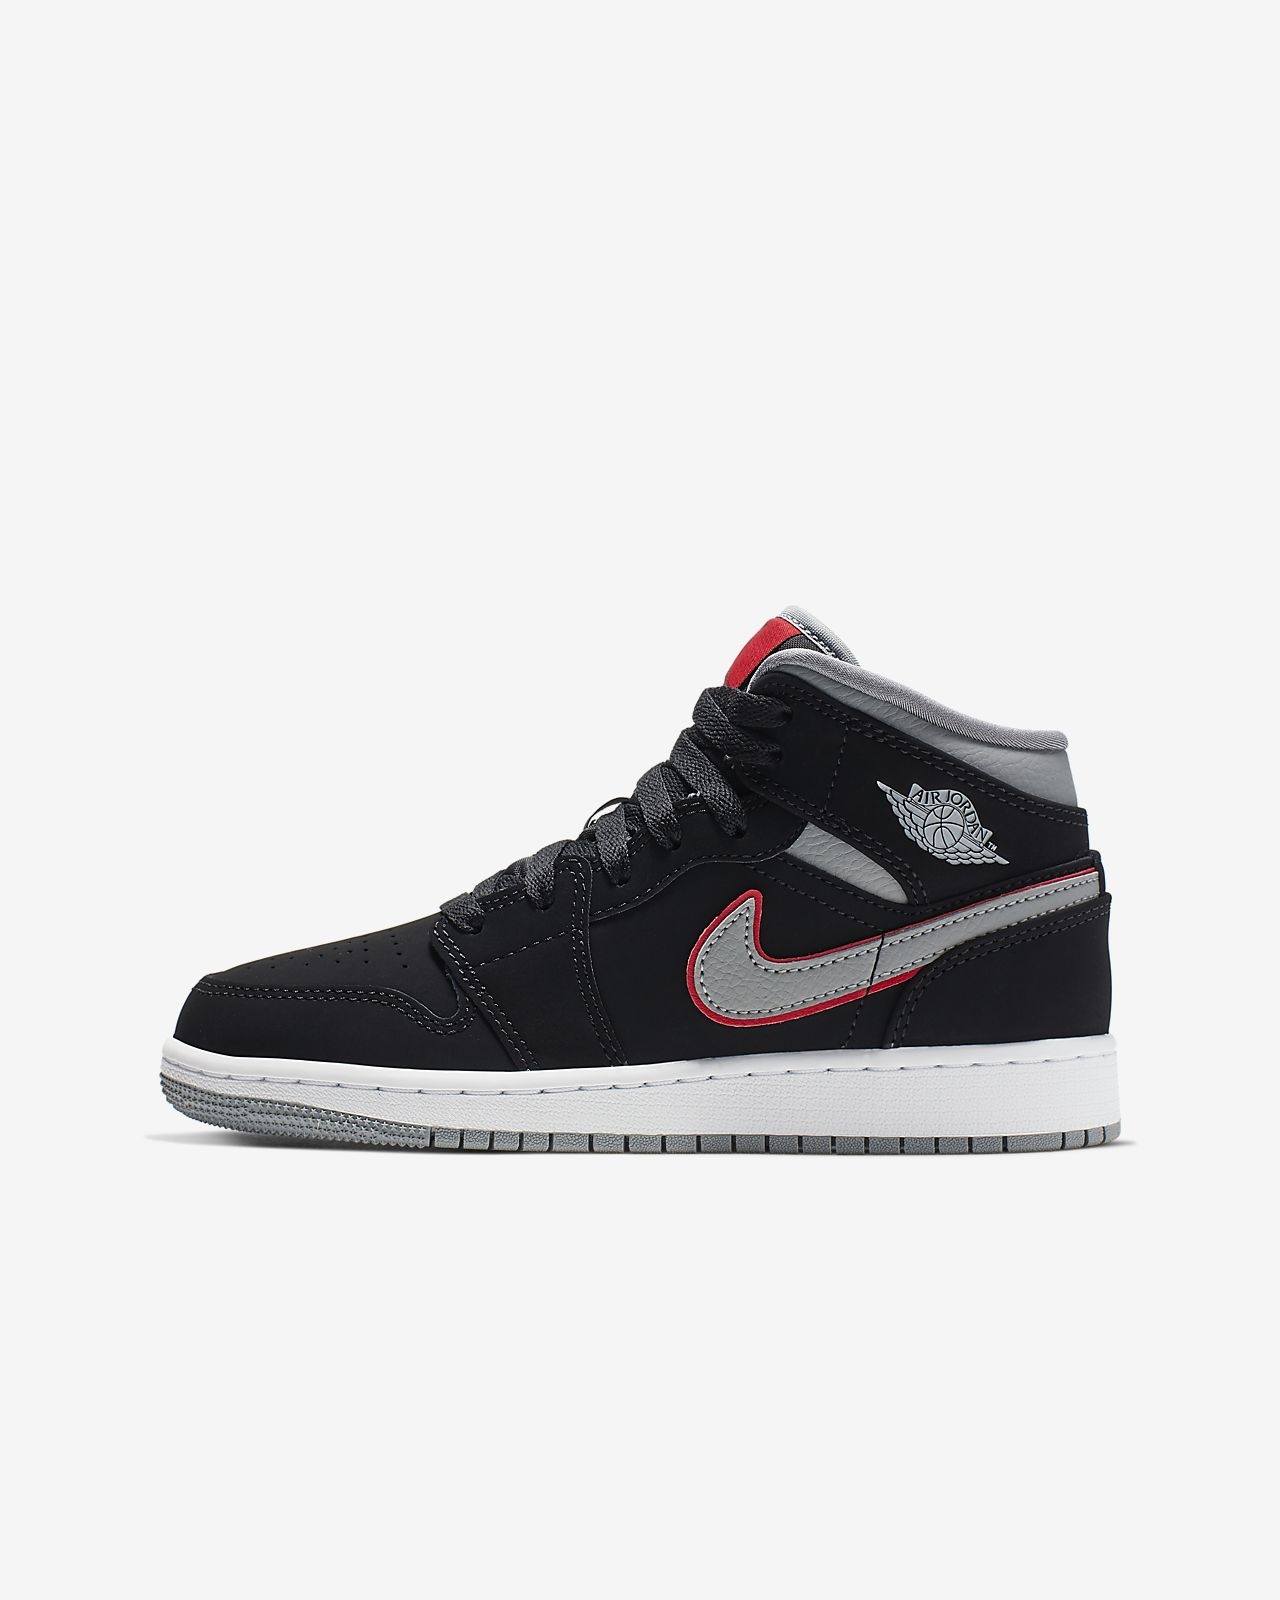 finest selection a8ce1 d2e70 Big Kids  Shoe. Air Jordan 1 Mid